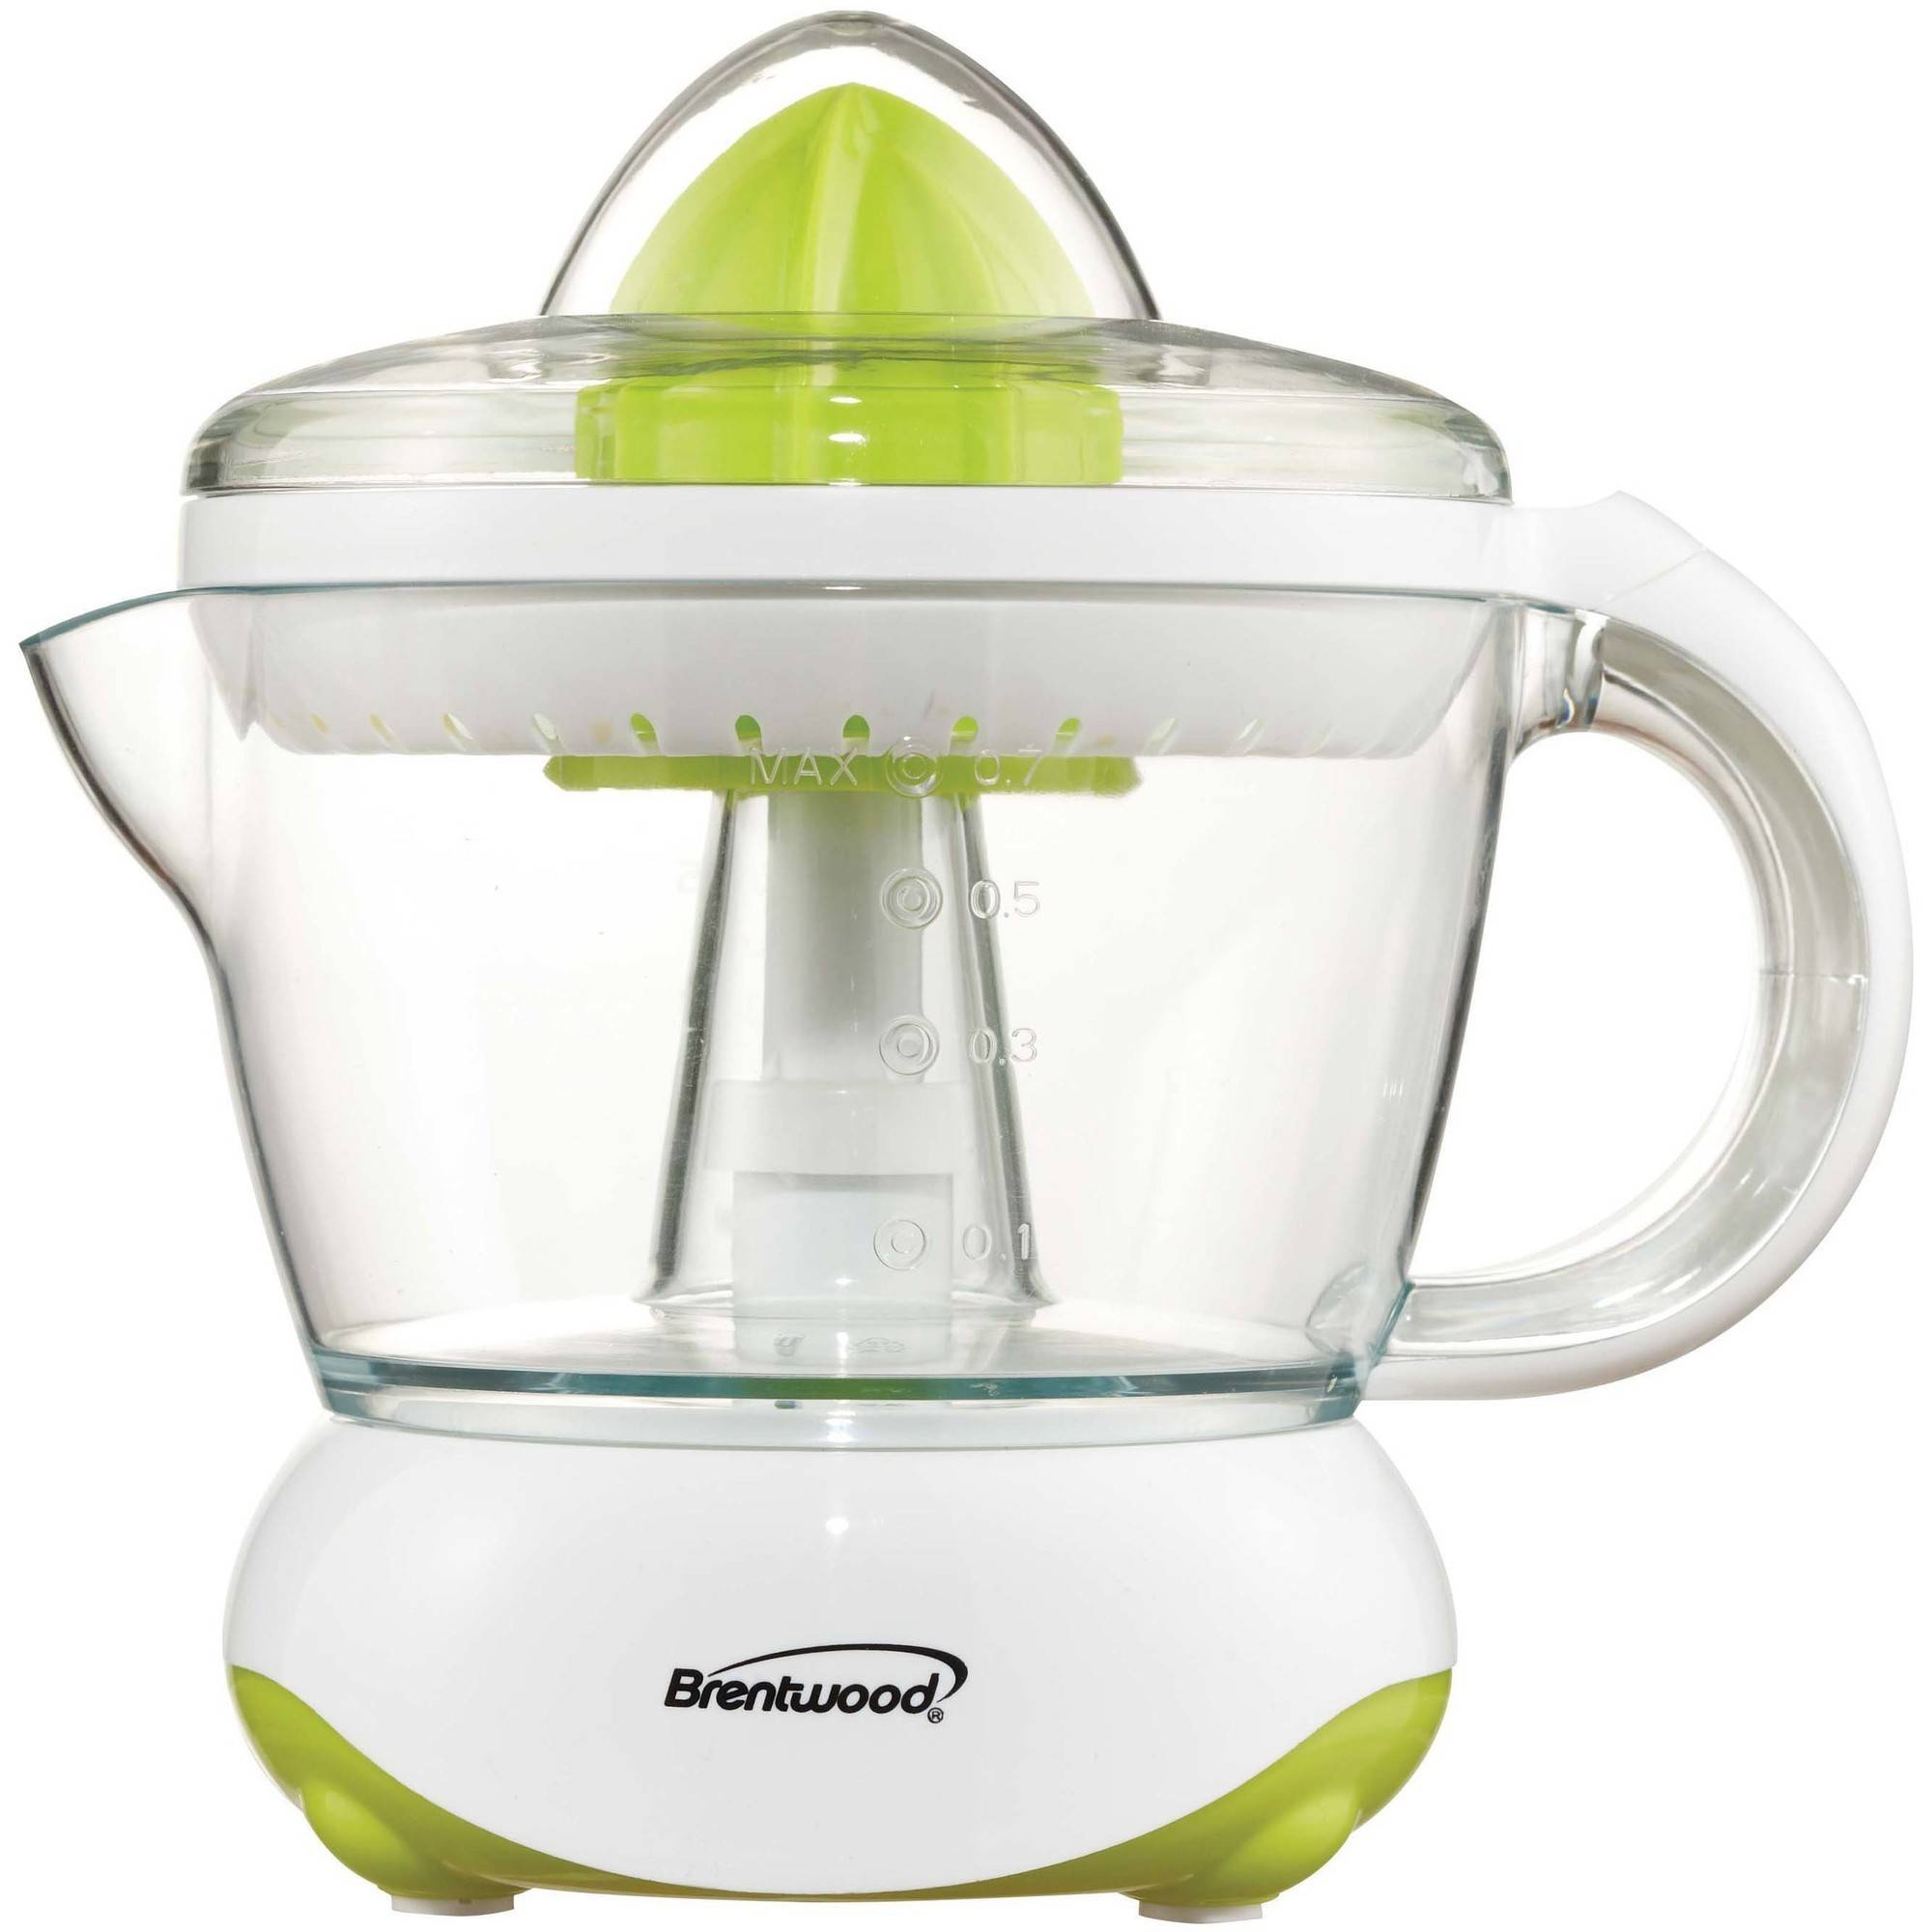 Brentwood Electric Citrus Juicer 500 ml, White